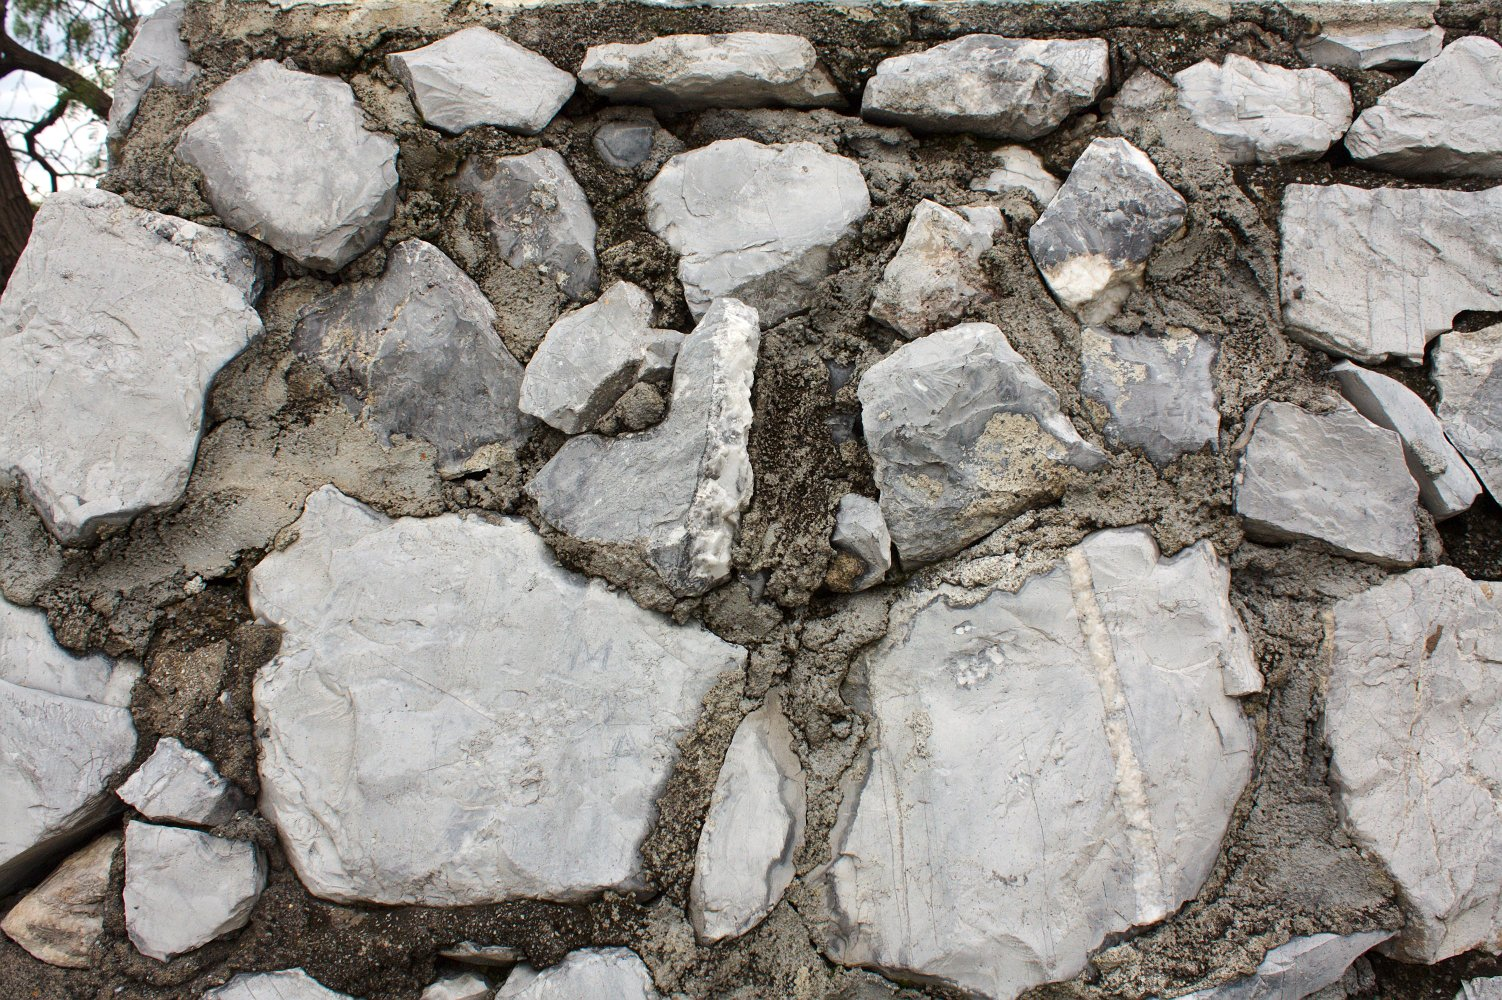 Stone texture, Abstract, Rock, Interior, Marble, HQ Photo